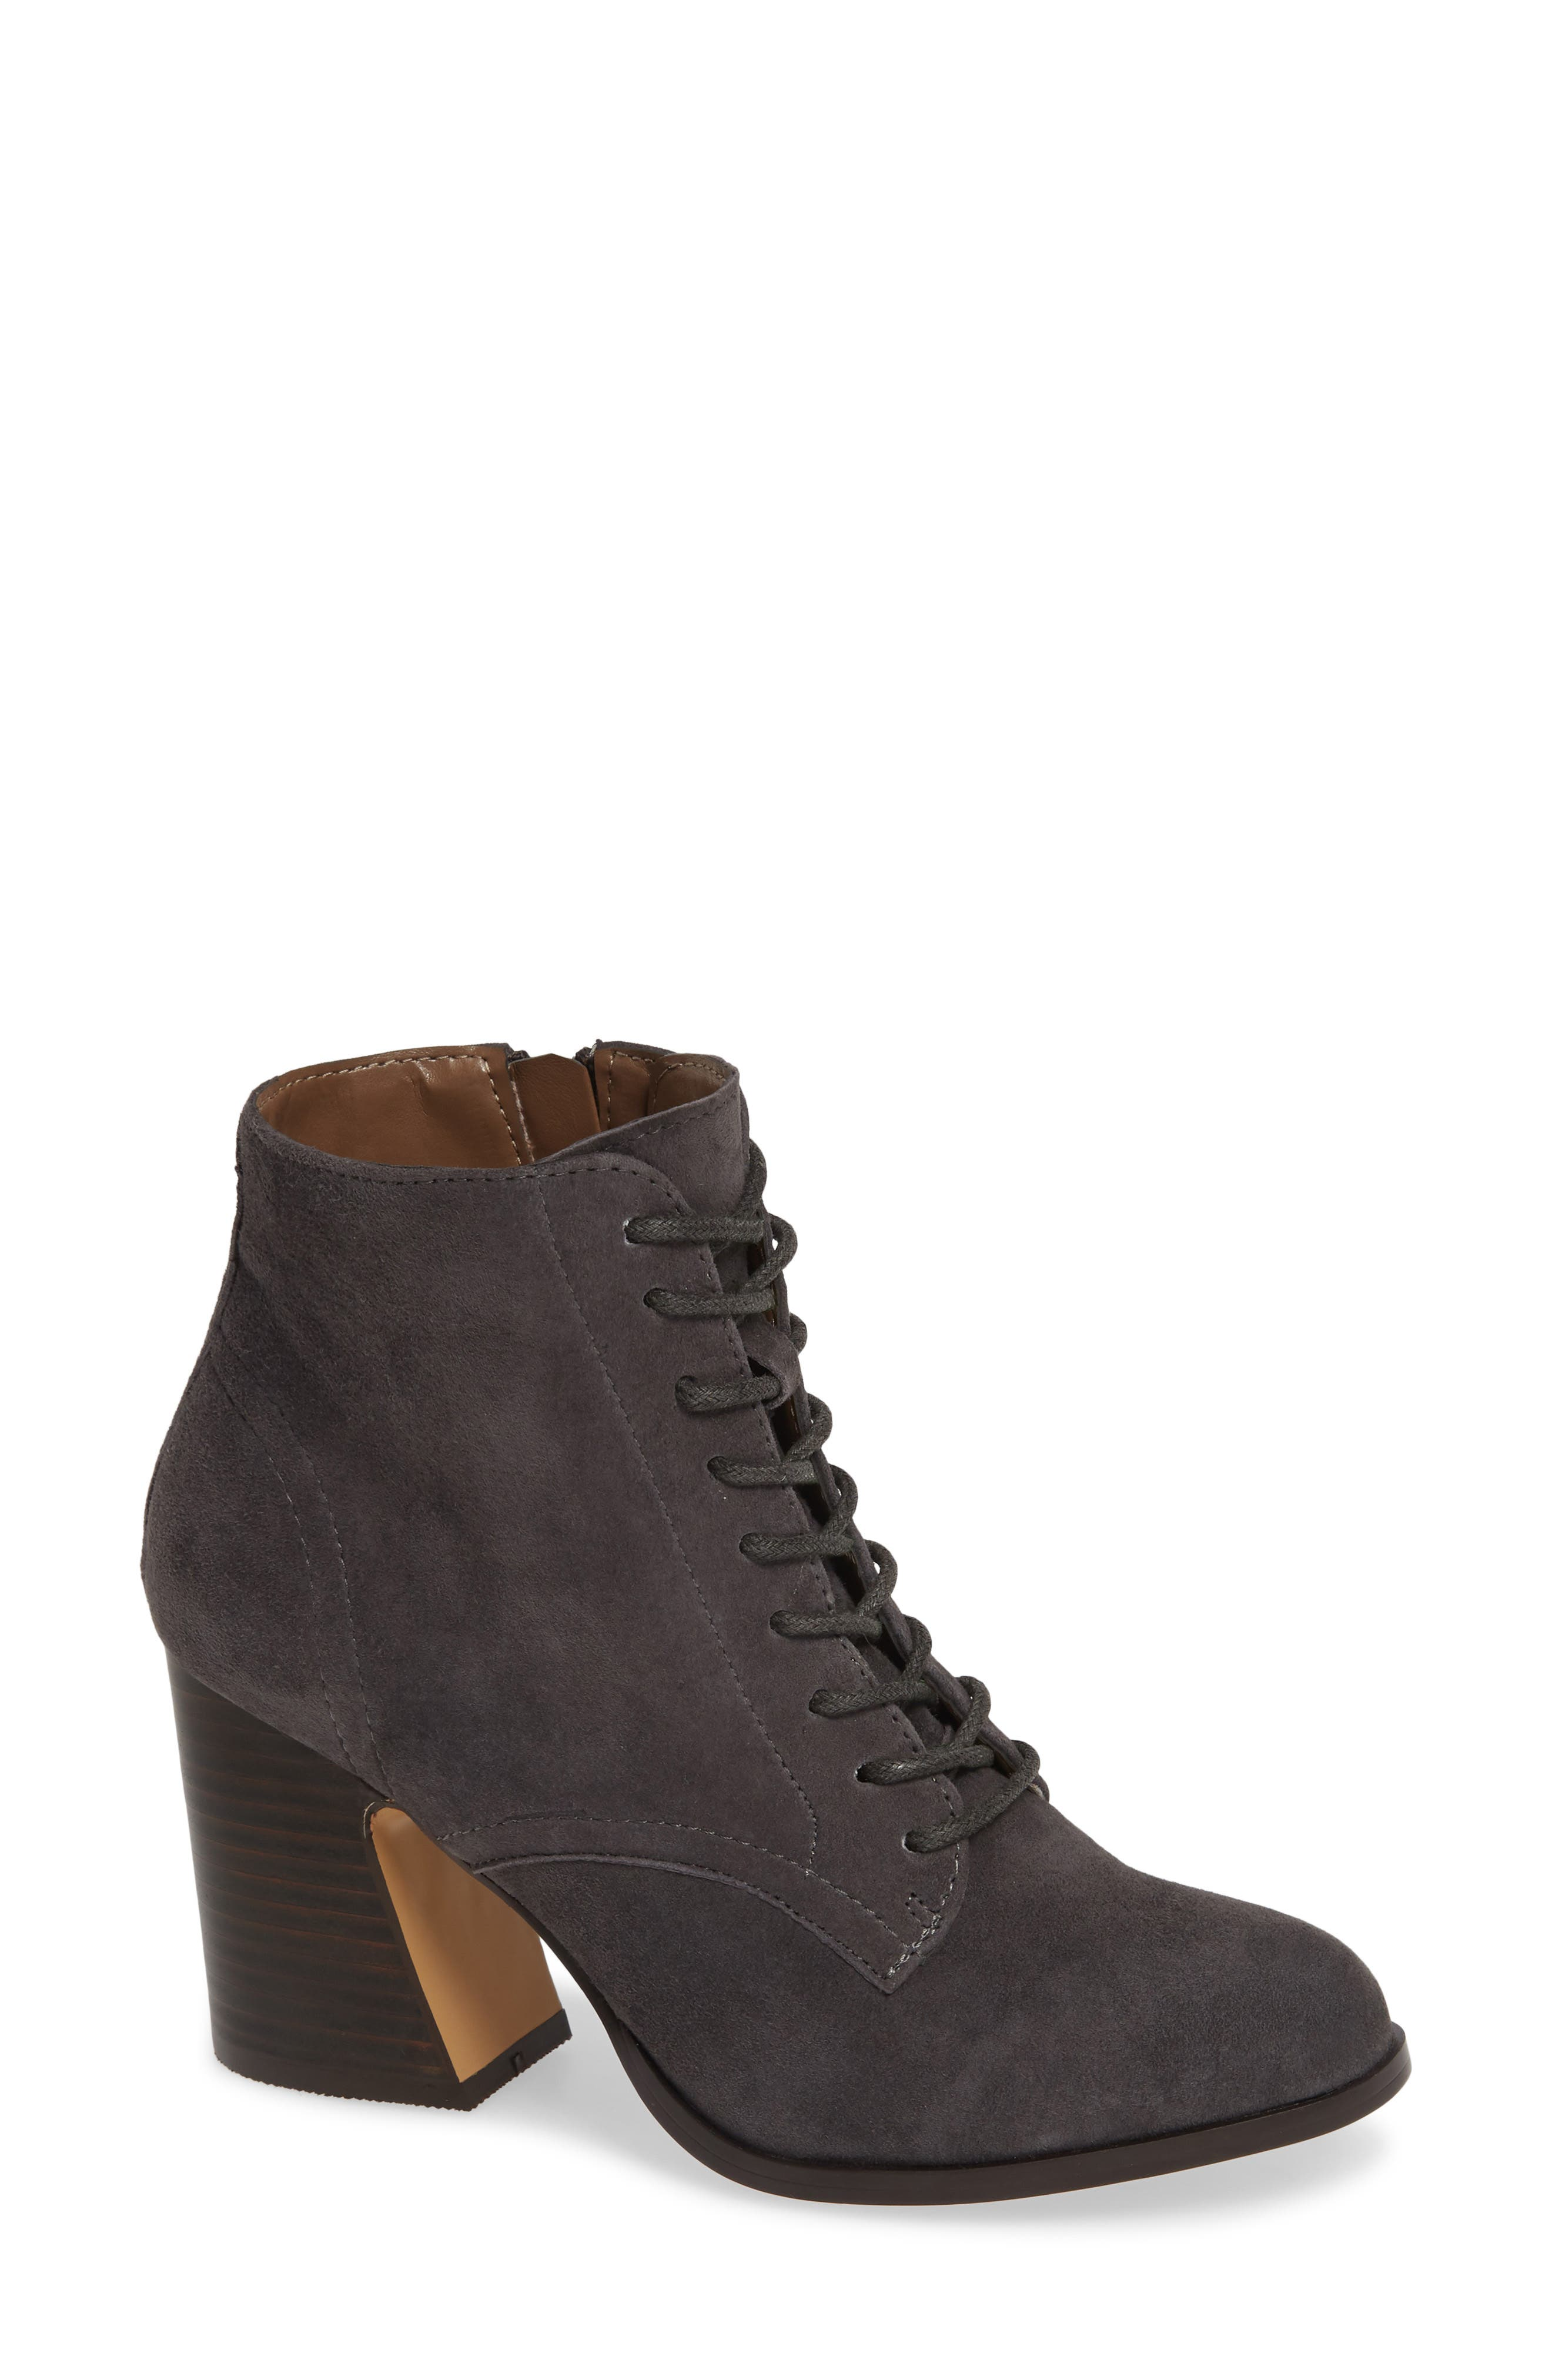 Kensie Smith Lace-Up Bootie- Grey